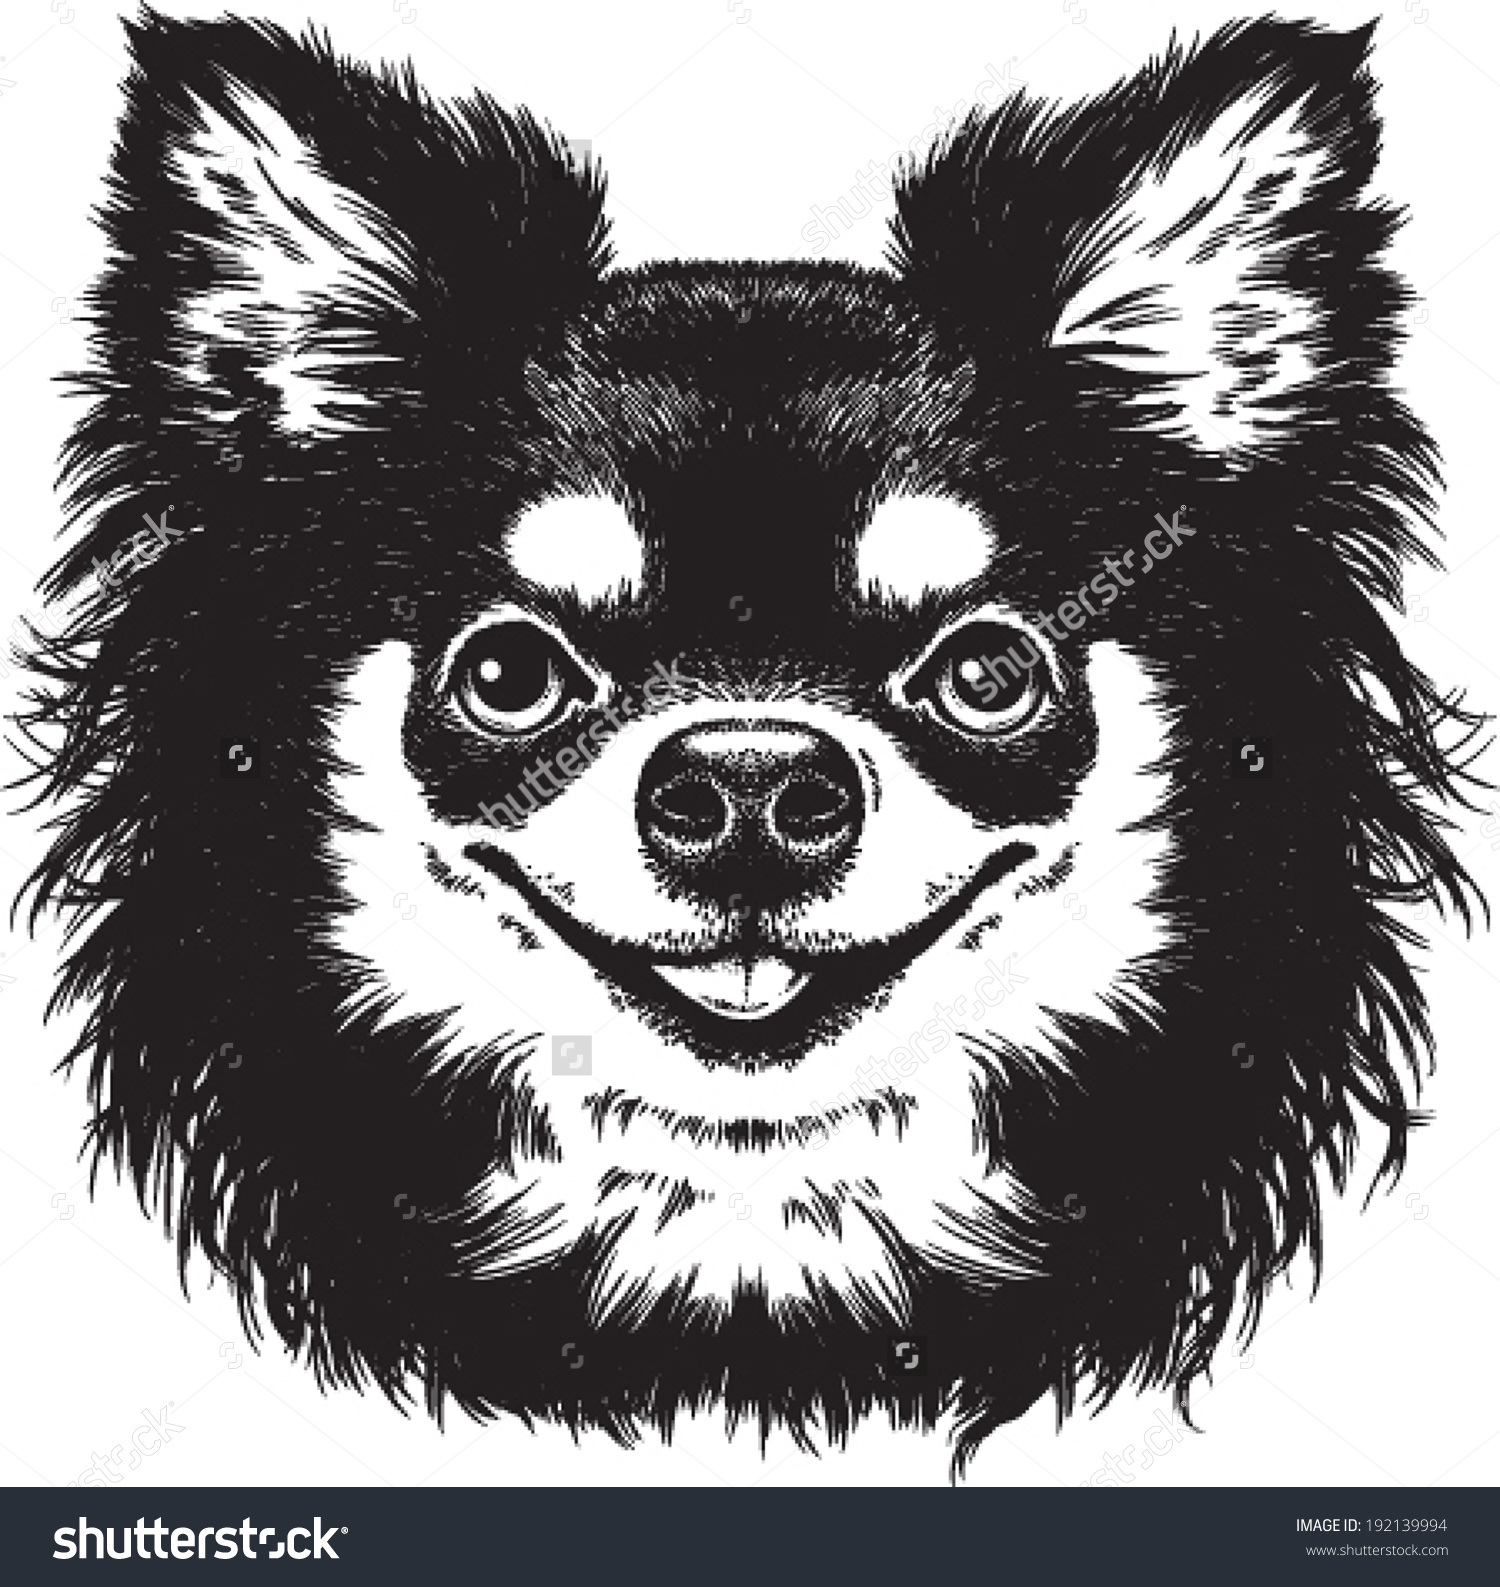 Black White Vector Sketch Cute Long Stock Vector 192139994.